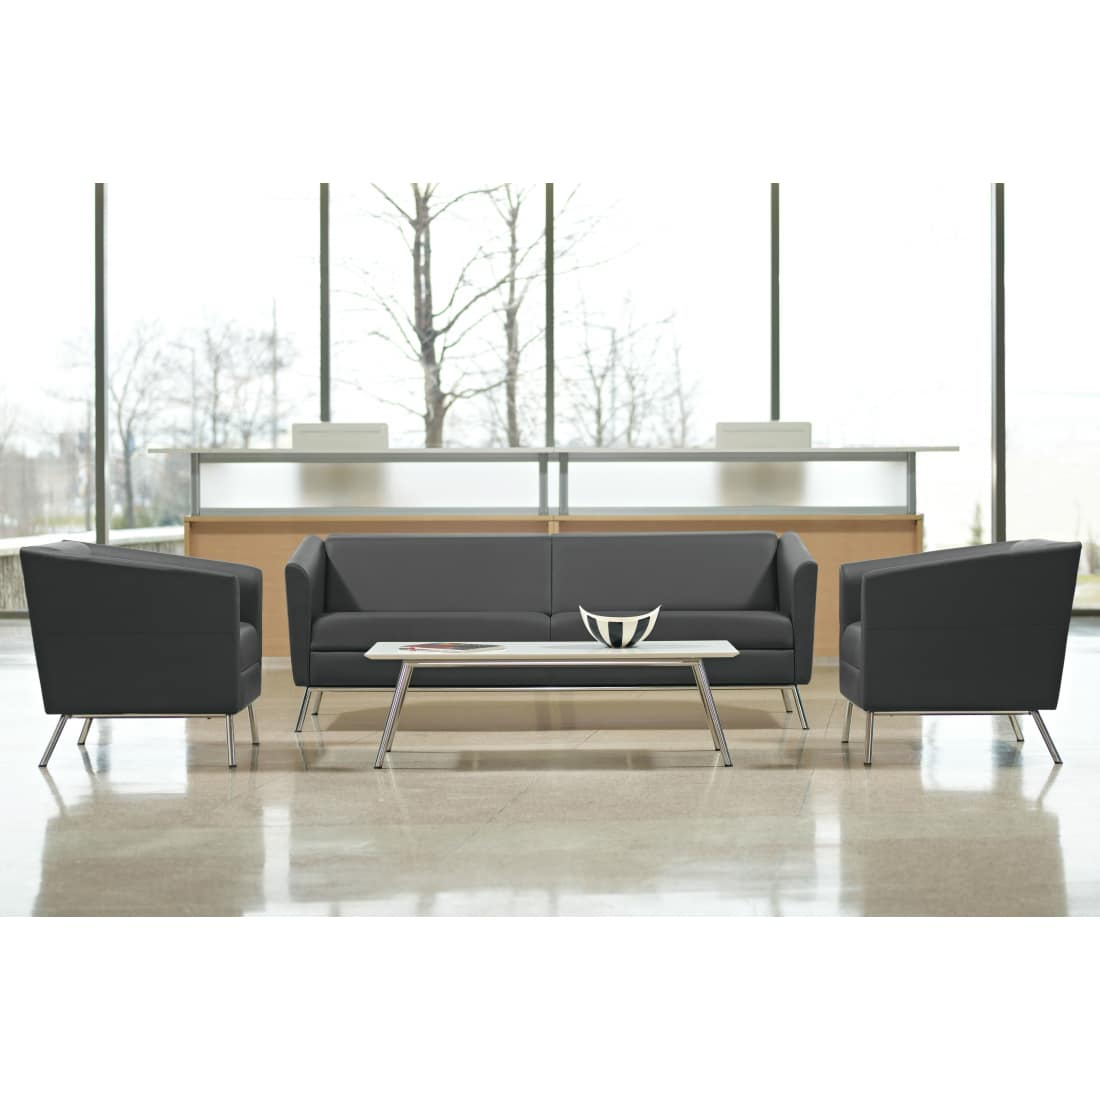 Wind Tables with Wind Seating Near Reception Desk